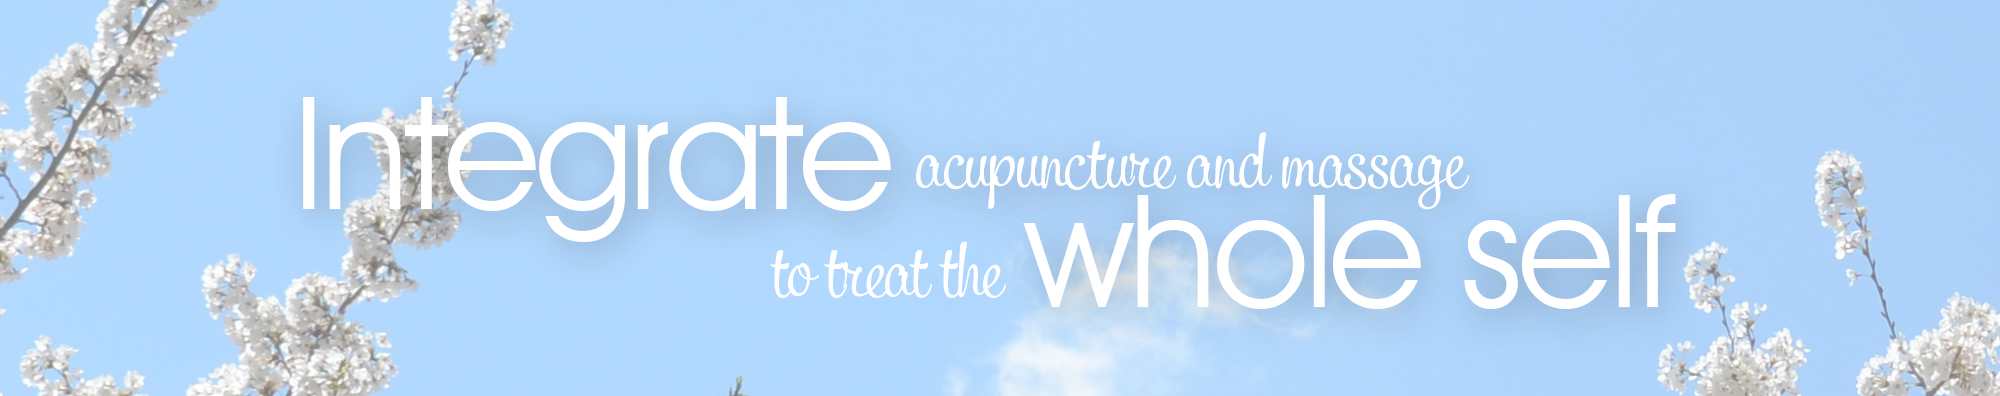 Integrate acupuncture and massage to treat the whole self